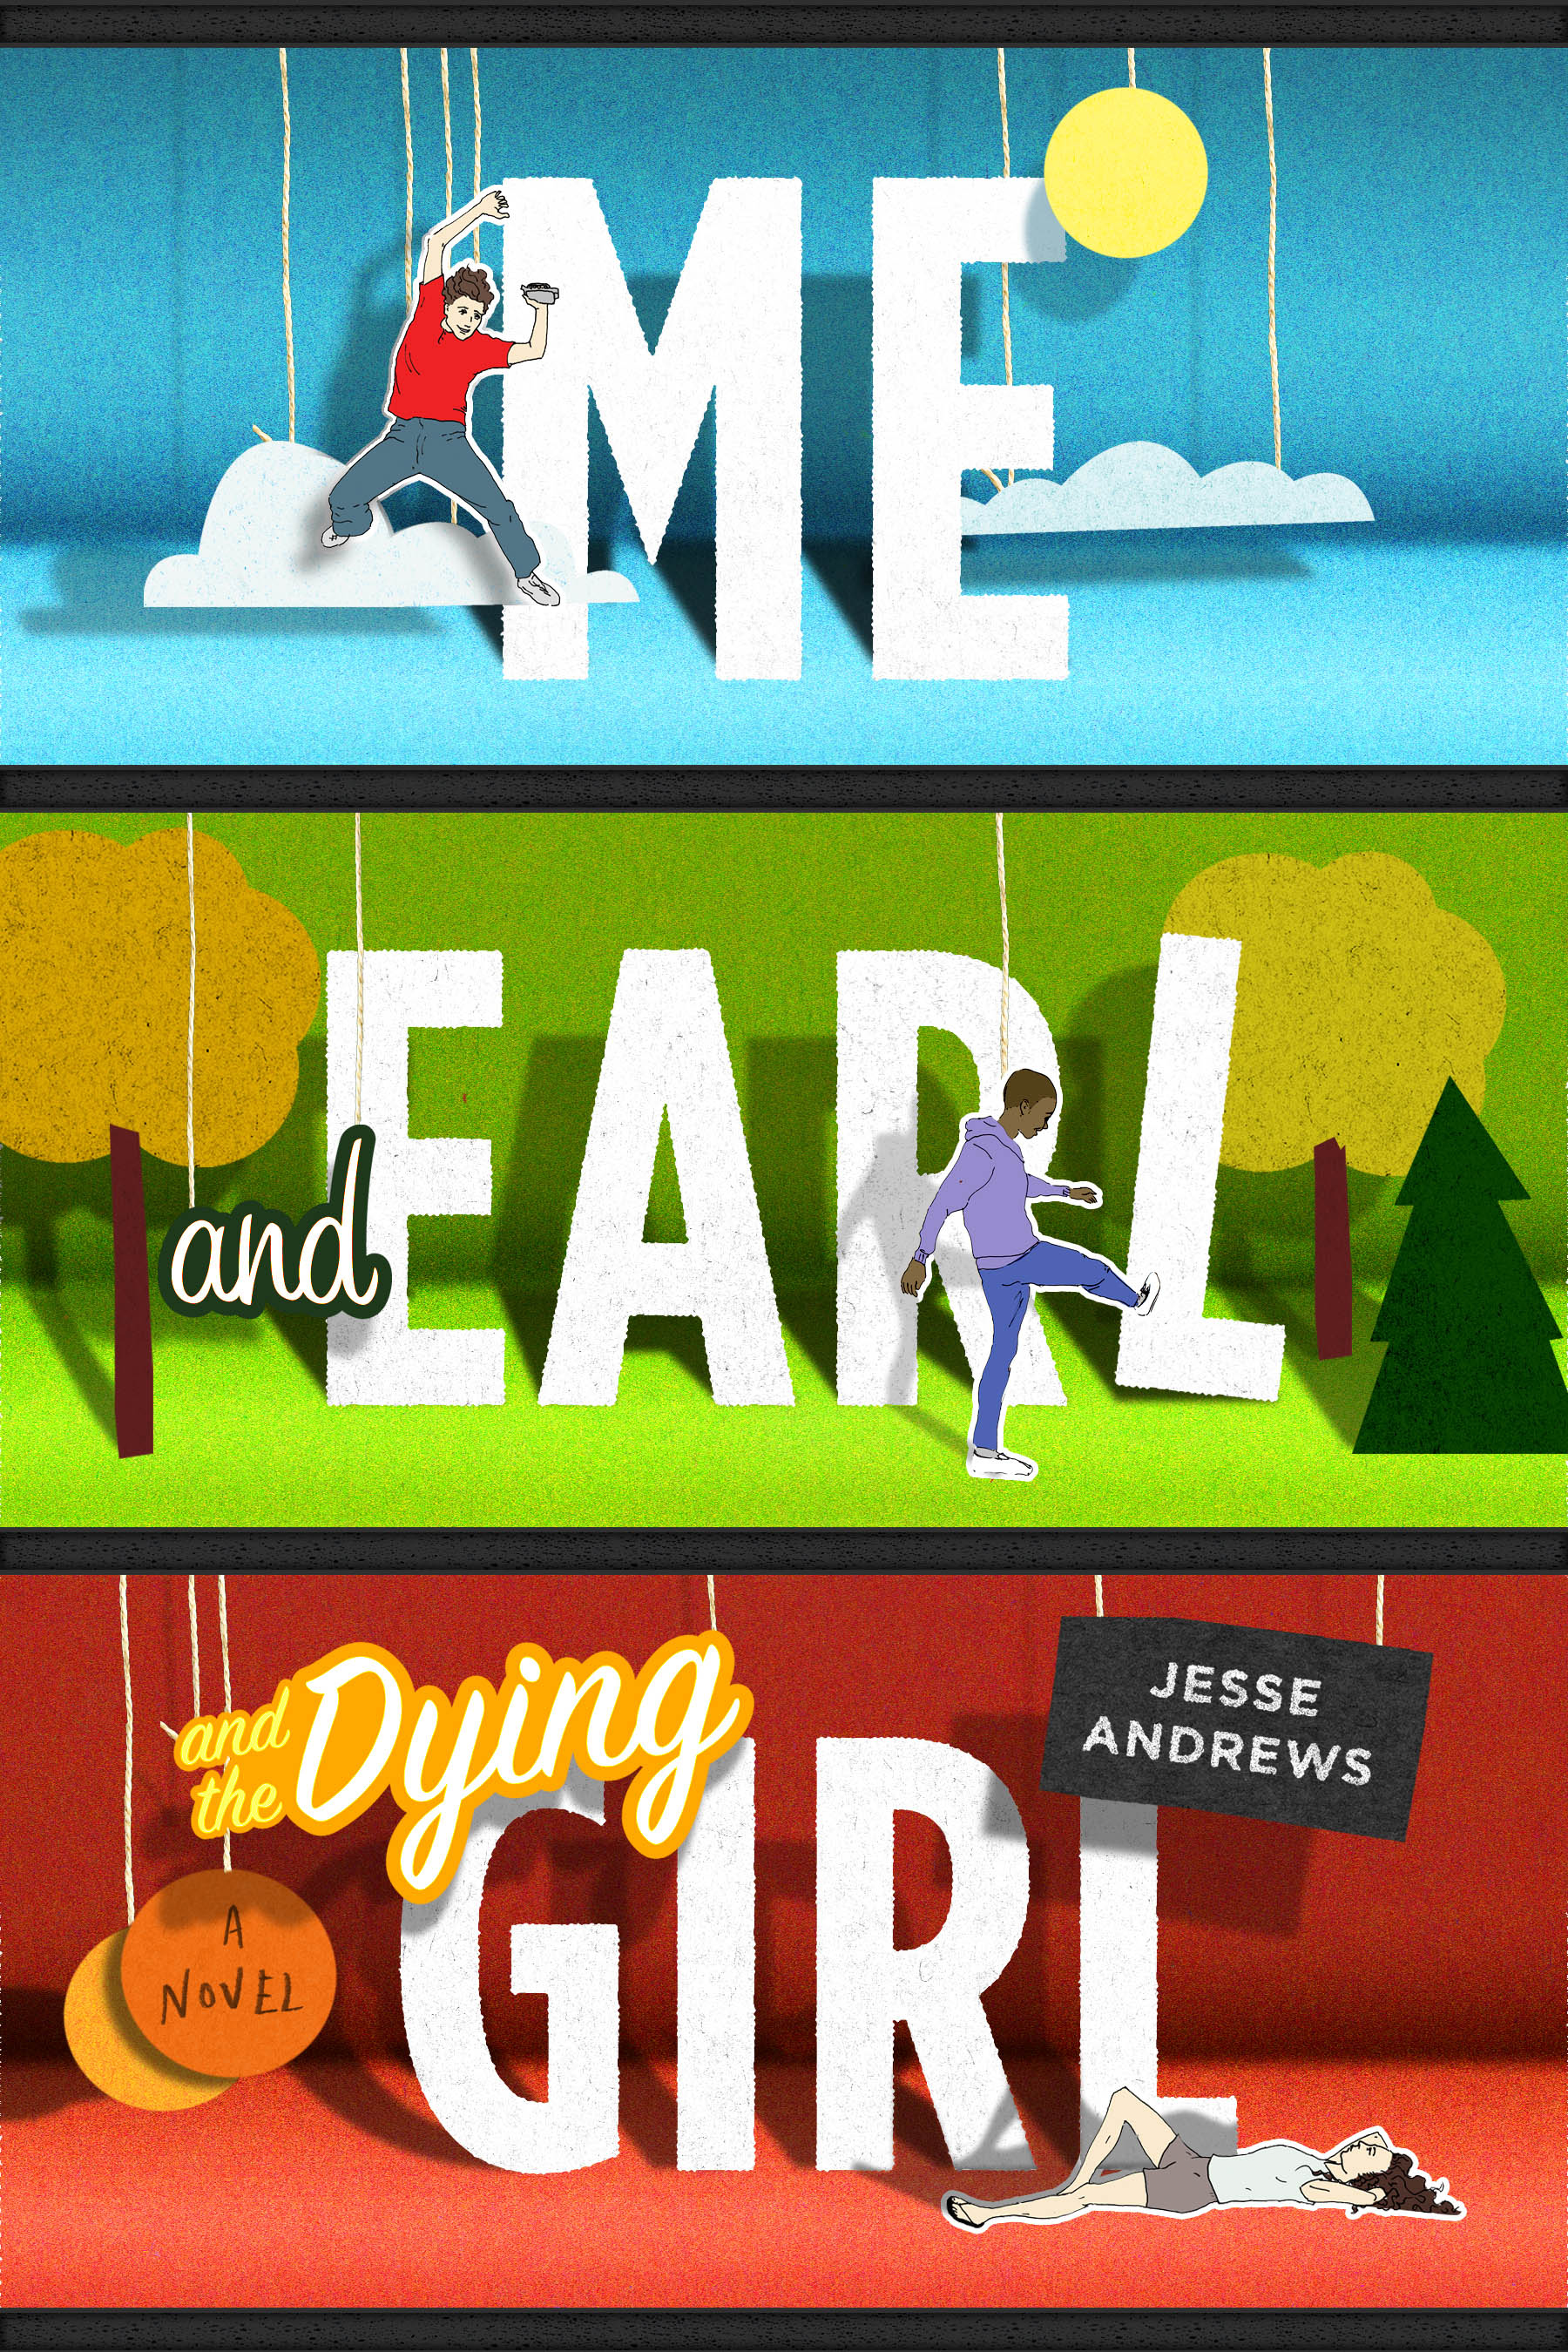 November Teen Book Discussion TUESDAY, 11/10/15 @ 6:30pm (Grades 8-12)